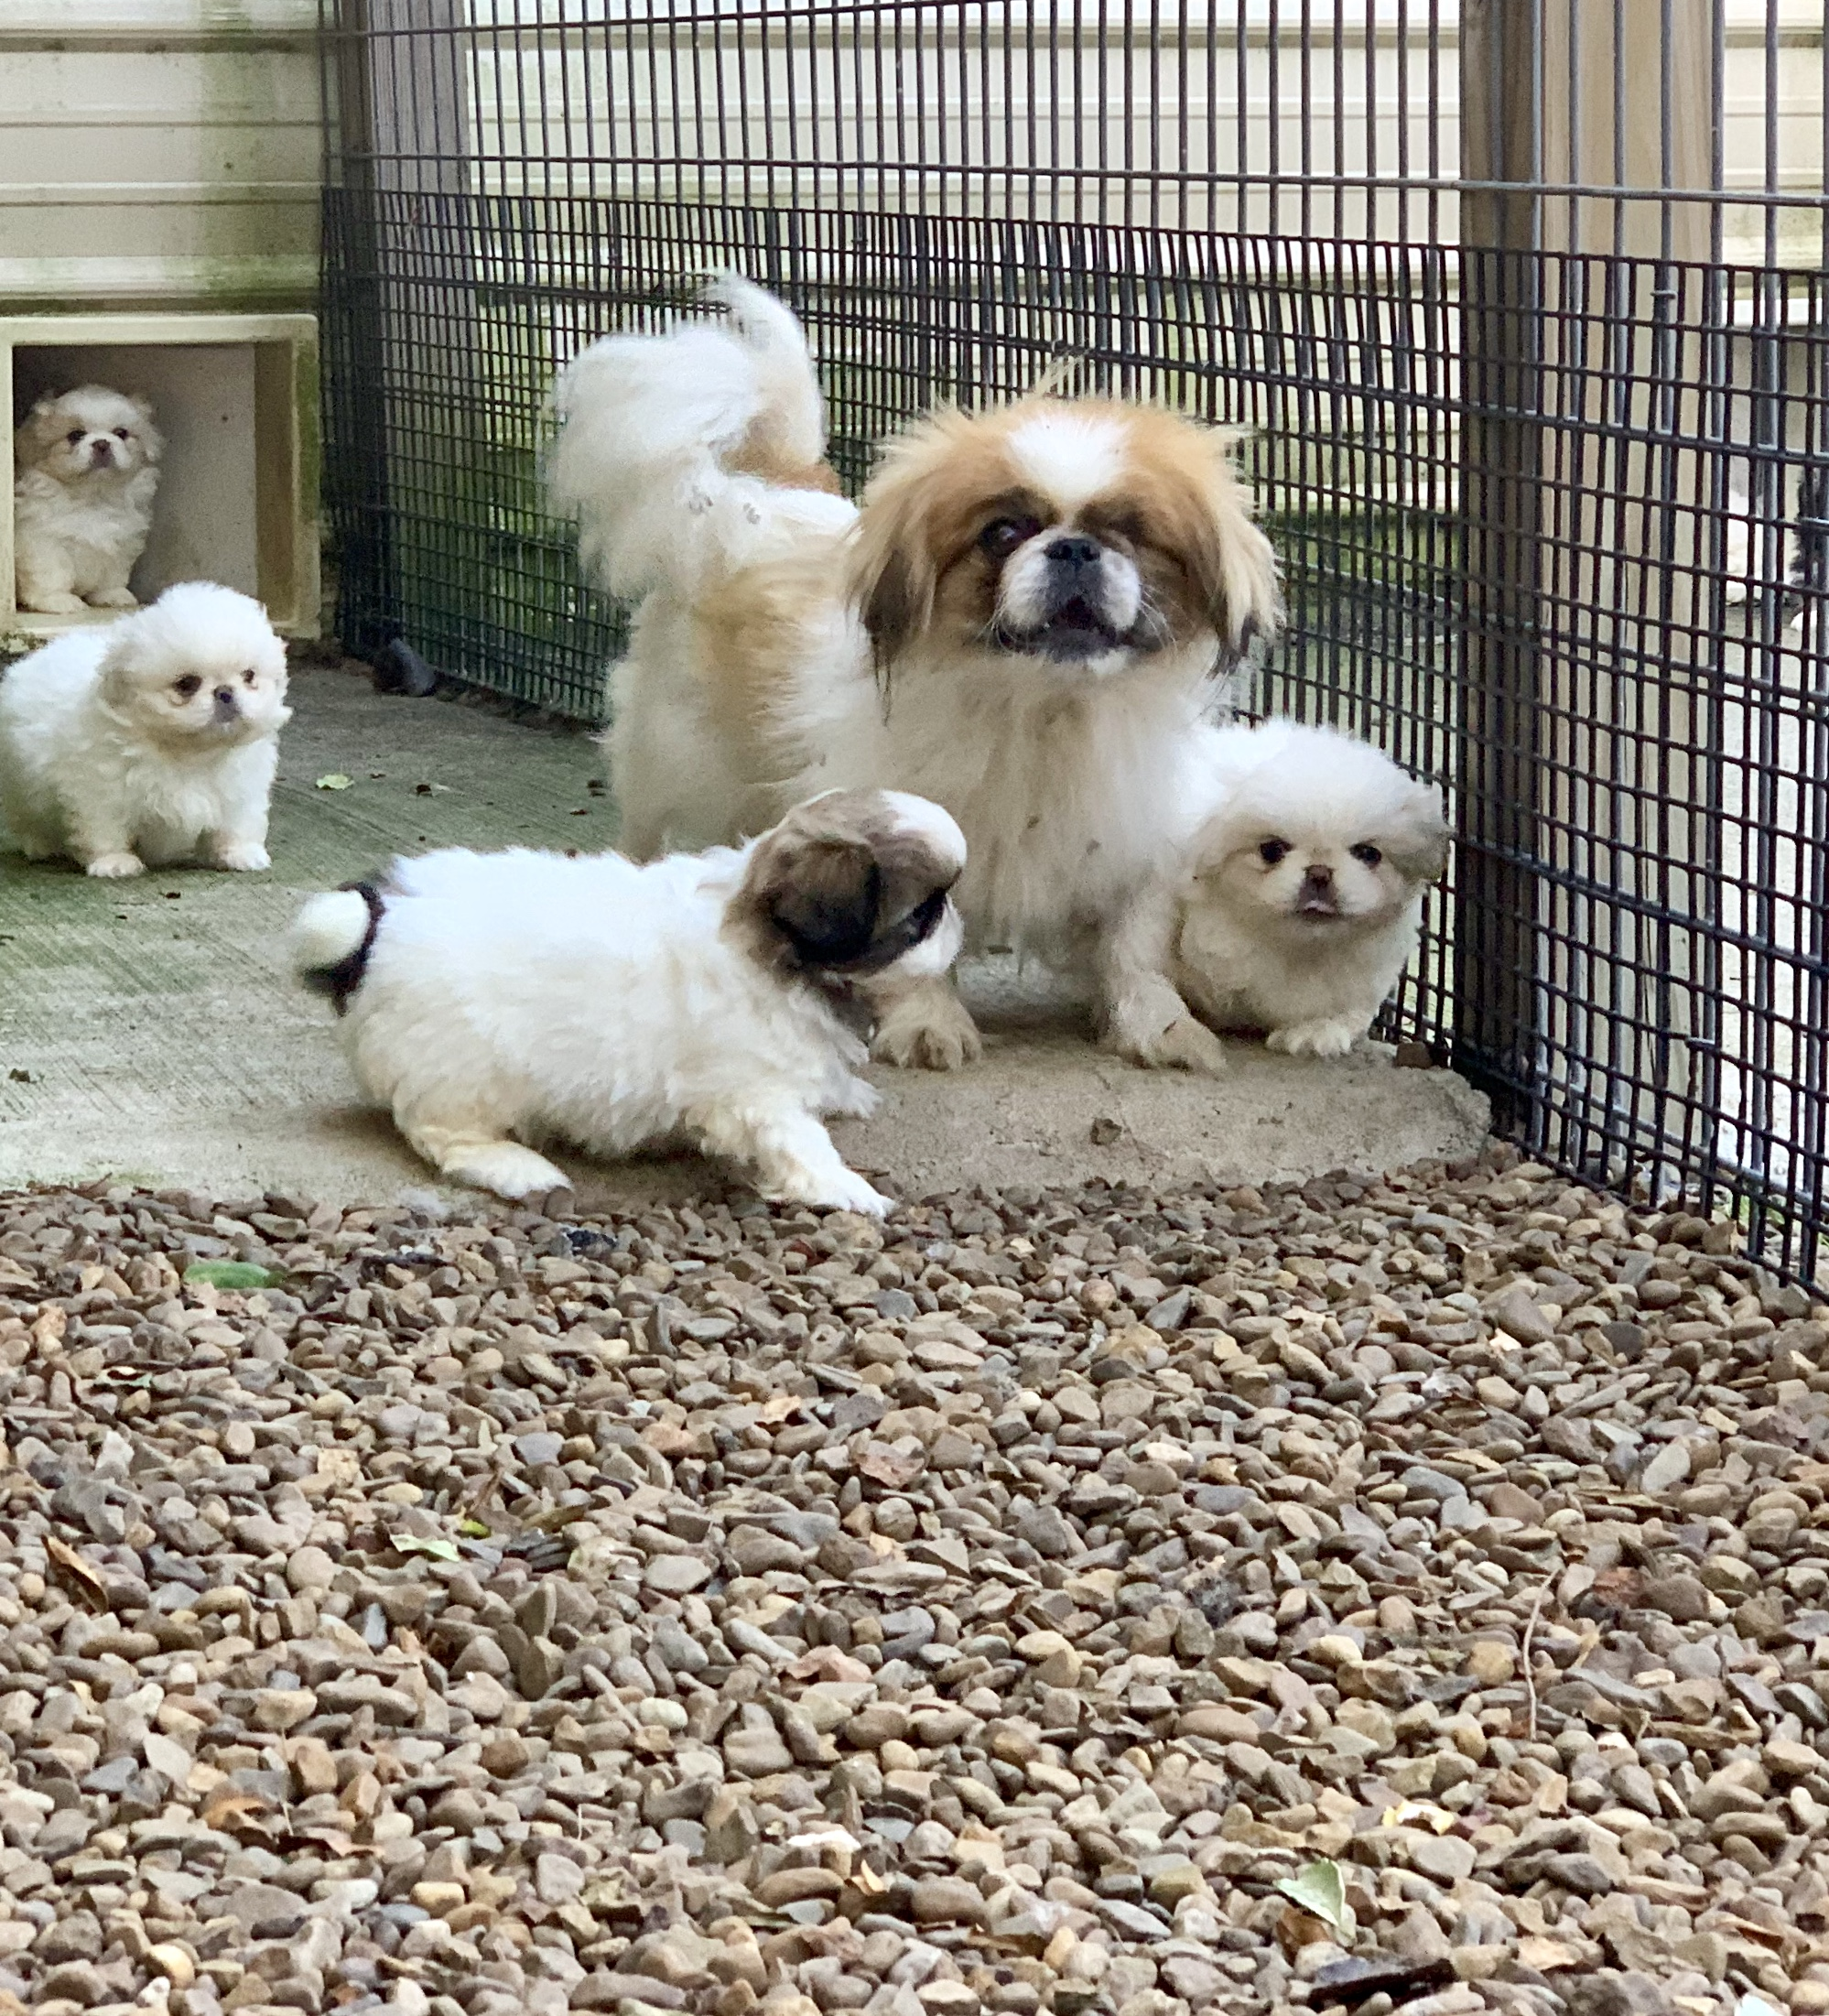 A happy momma Pekingese and her puppies